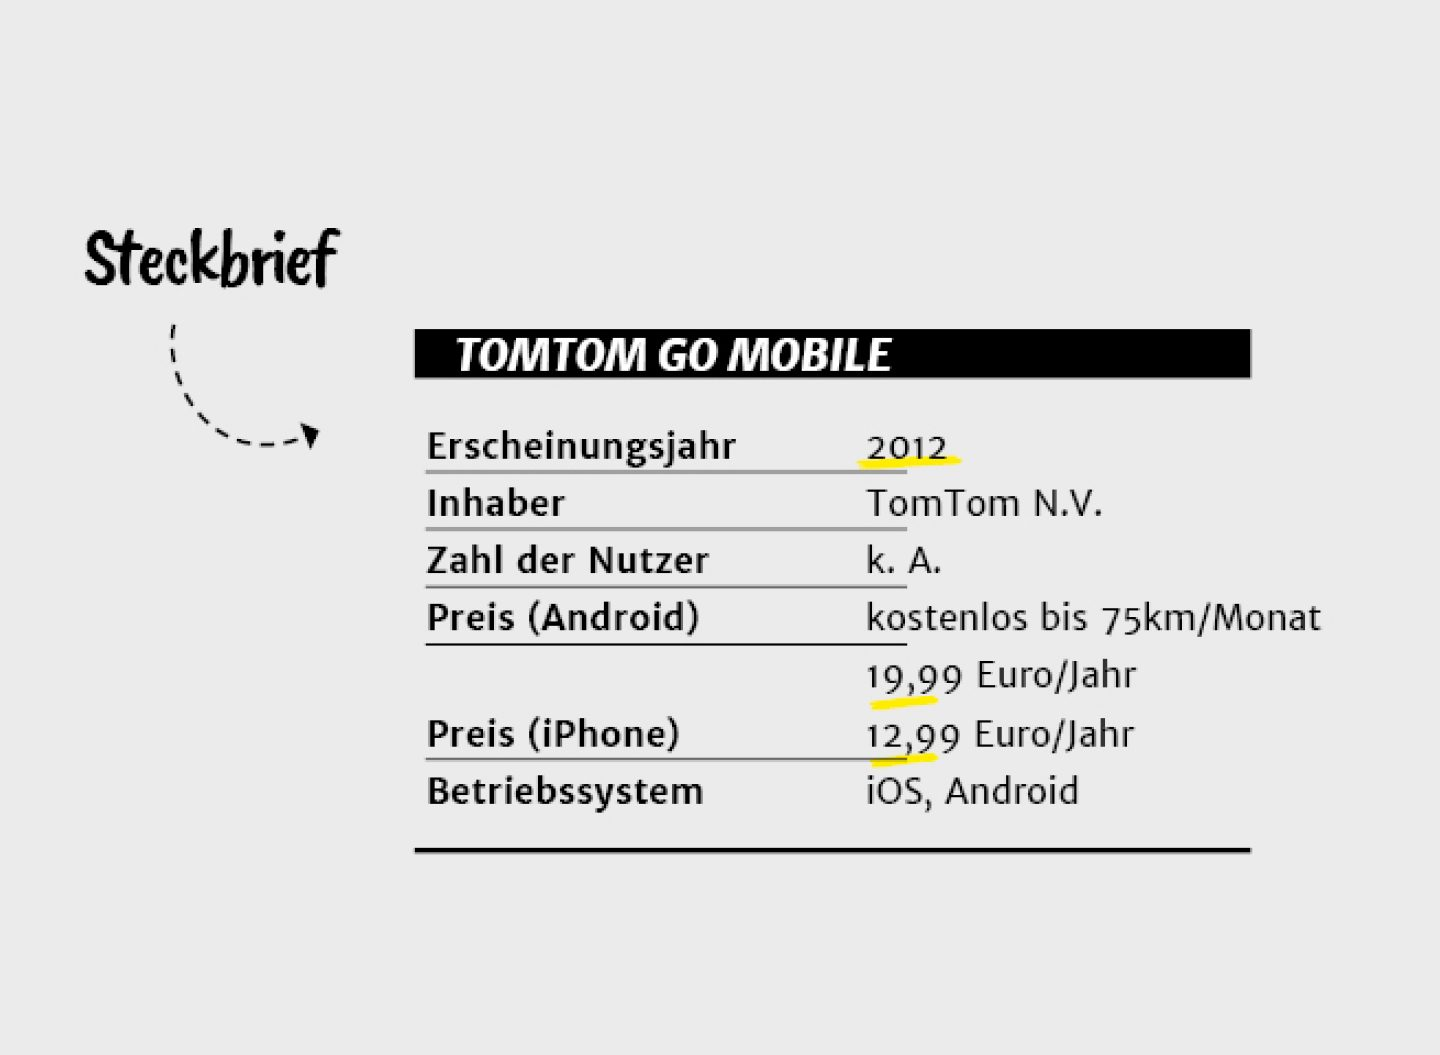 TomTom GO Mobile Datenblatt